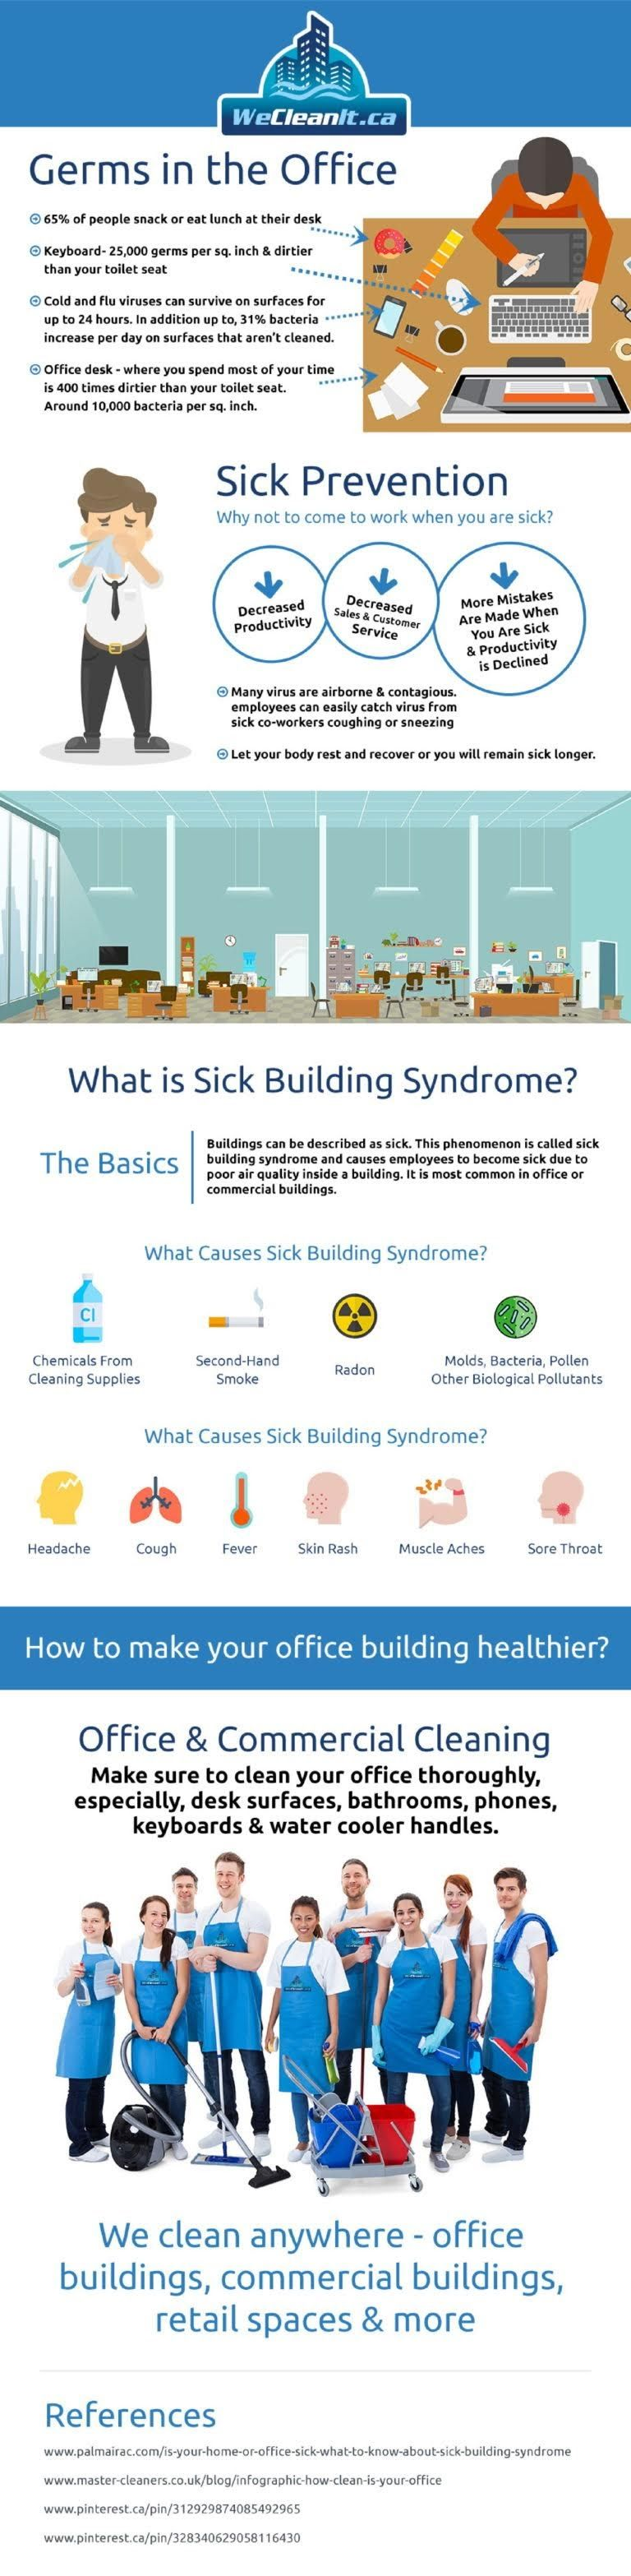 Less Employee Sick Days With Office Cleaning infographic